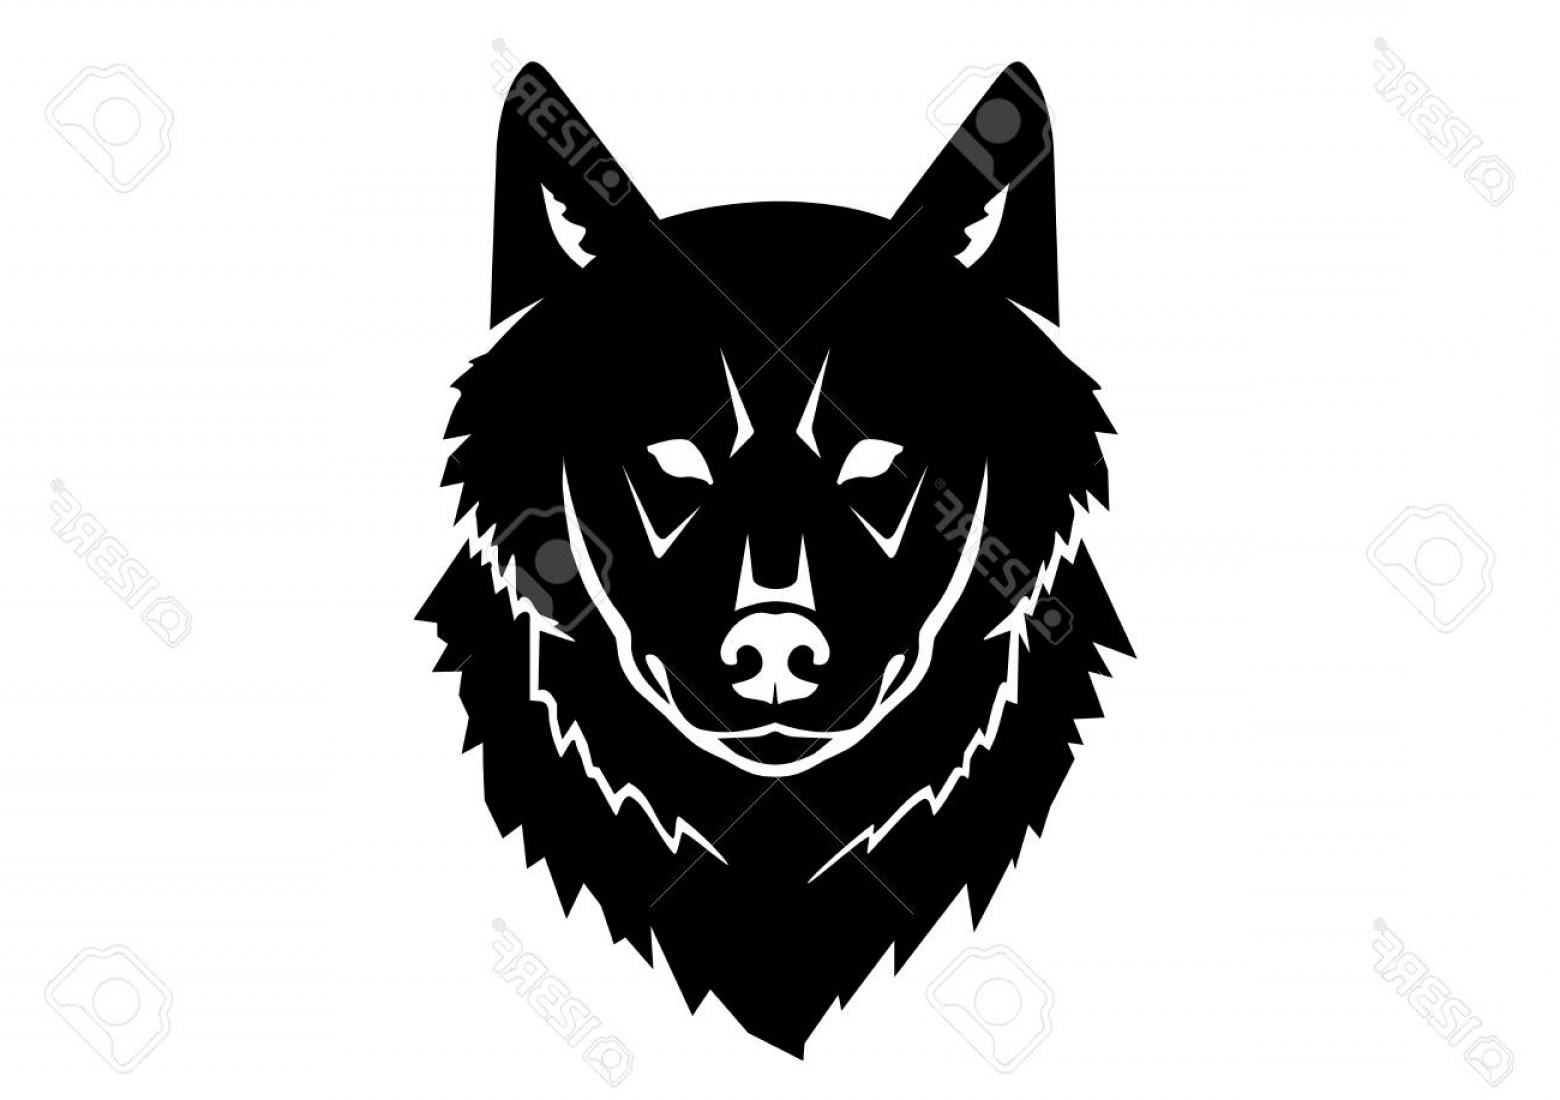 Calm Wolf Vector: Photostock Vector Black Silhouette Of A Wild Wolf On A White Background Symmetric Drawing Of An Animal Head From The F